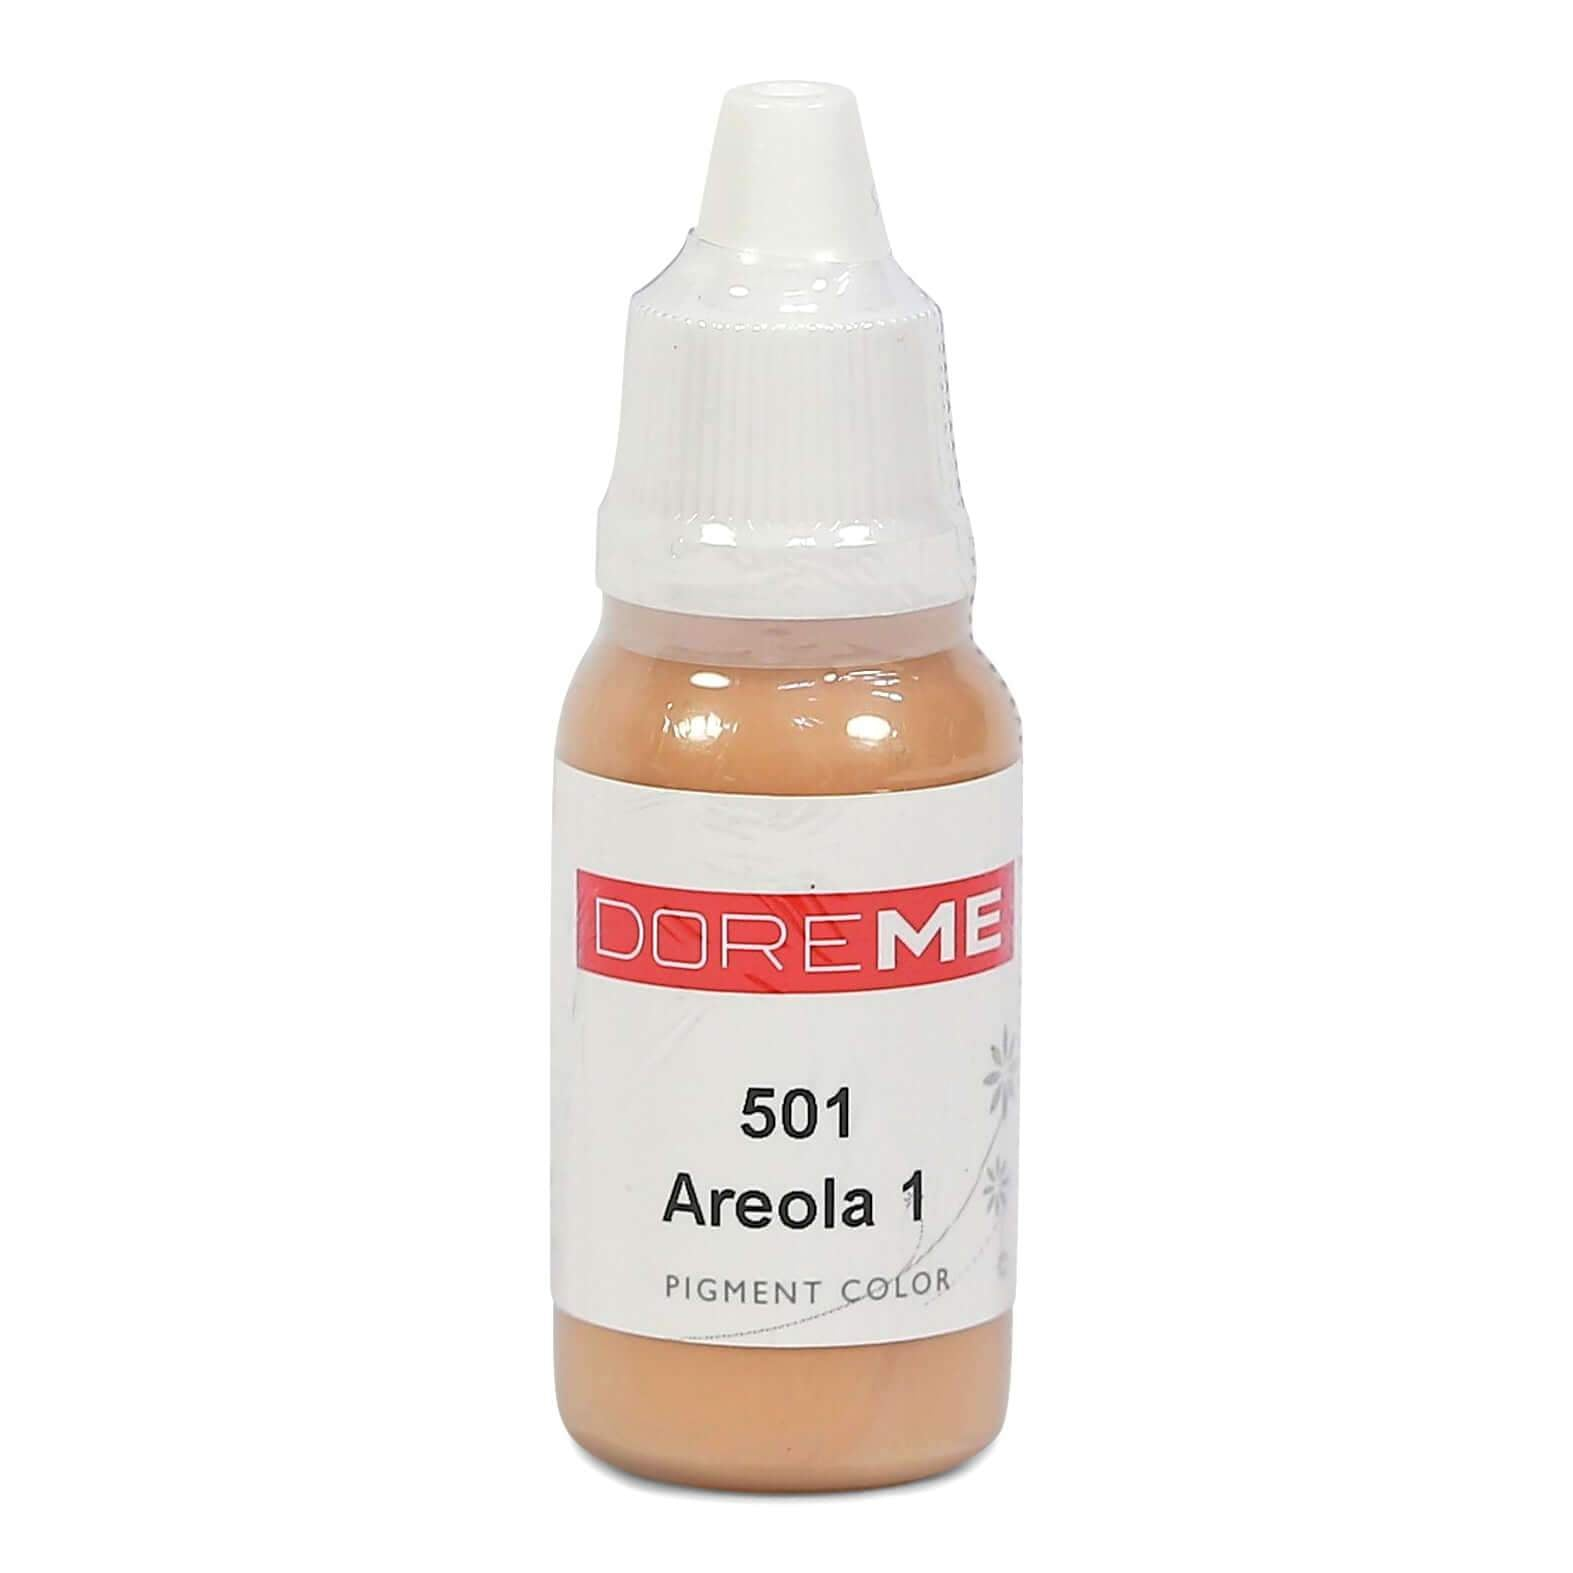 Doreme Areola Tattoo Pigments 501 Areola 1 (n) - Beautiful Ink UK trade and wholesale supplier